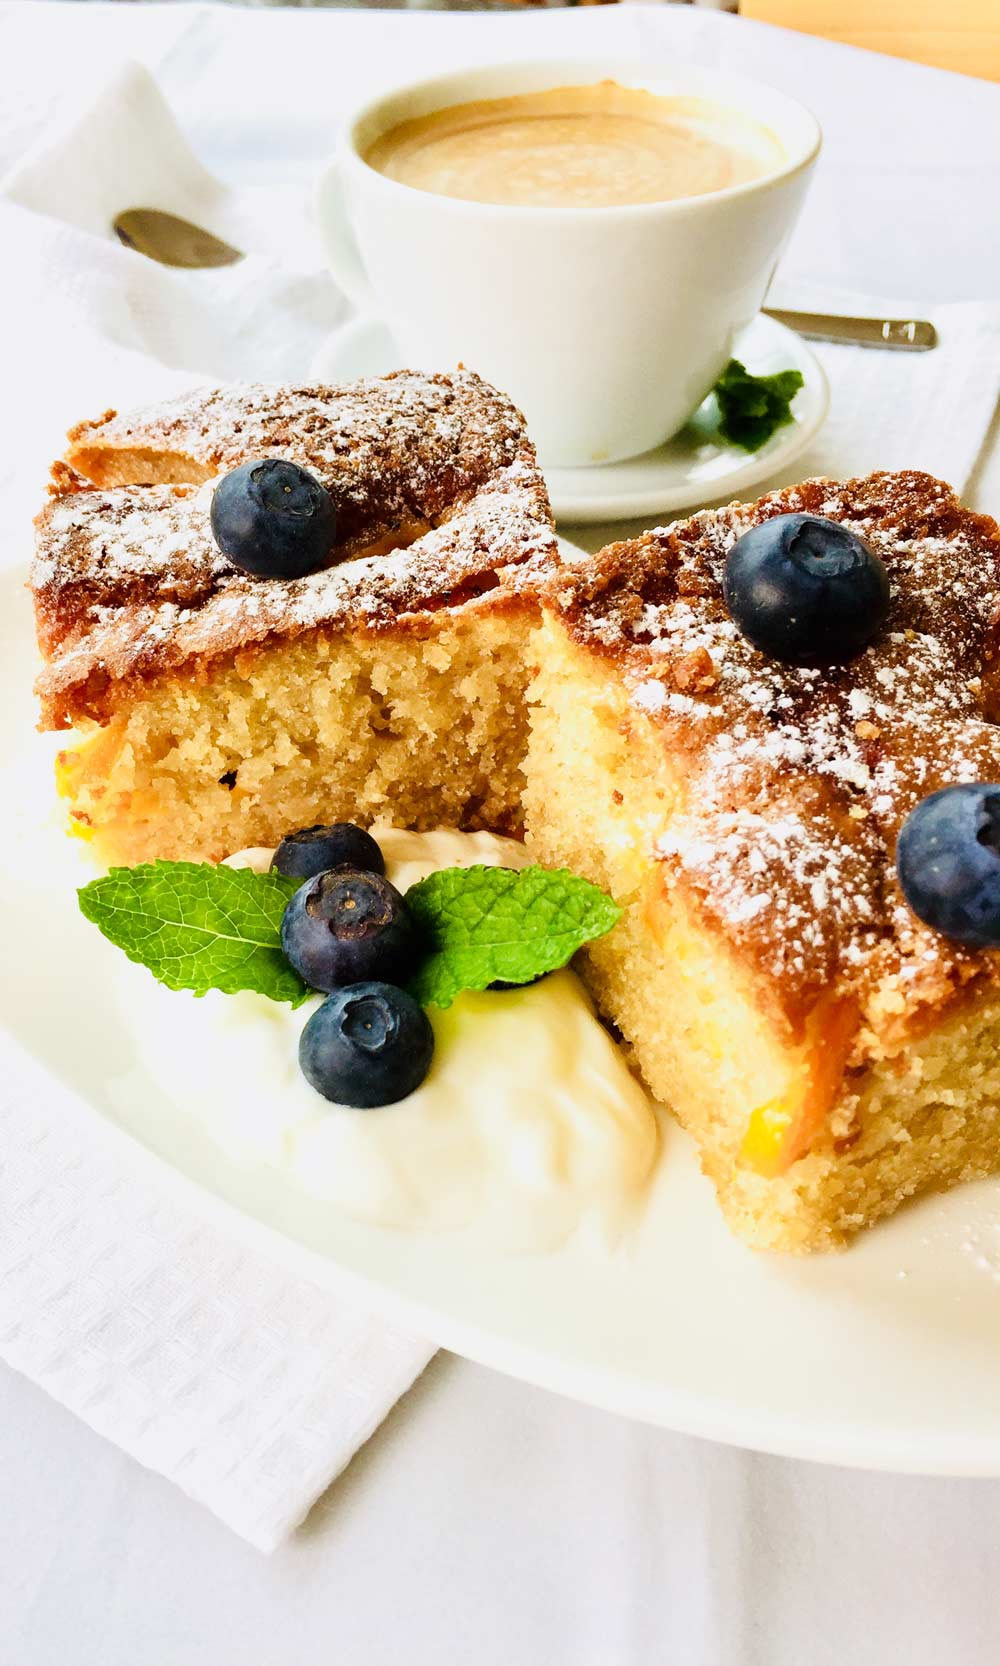 Some gluten free cake with almond and peaches.